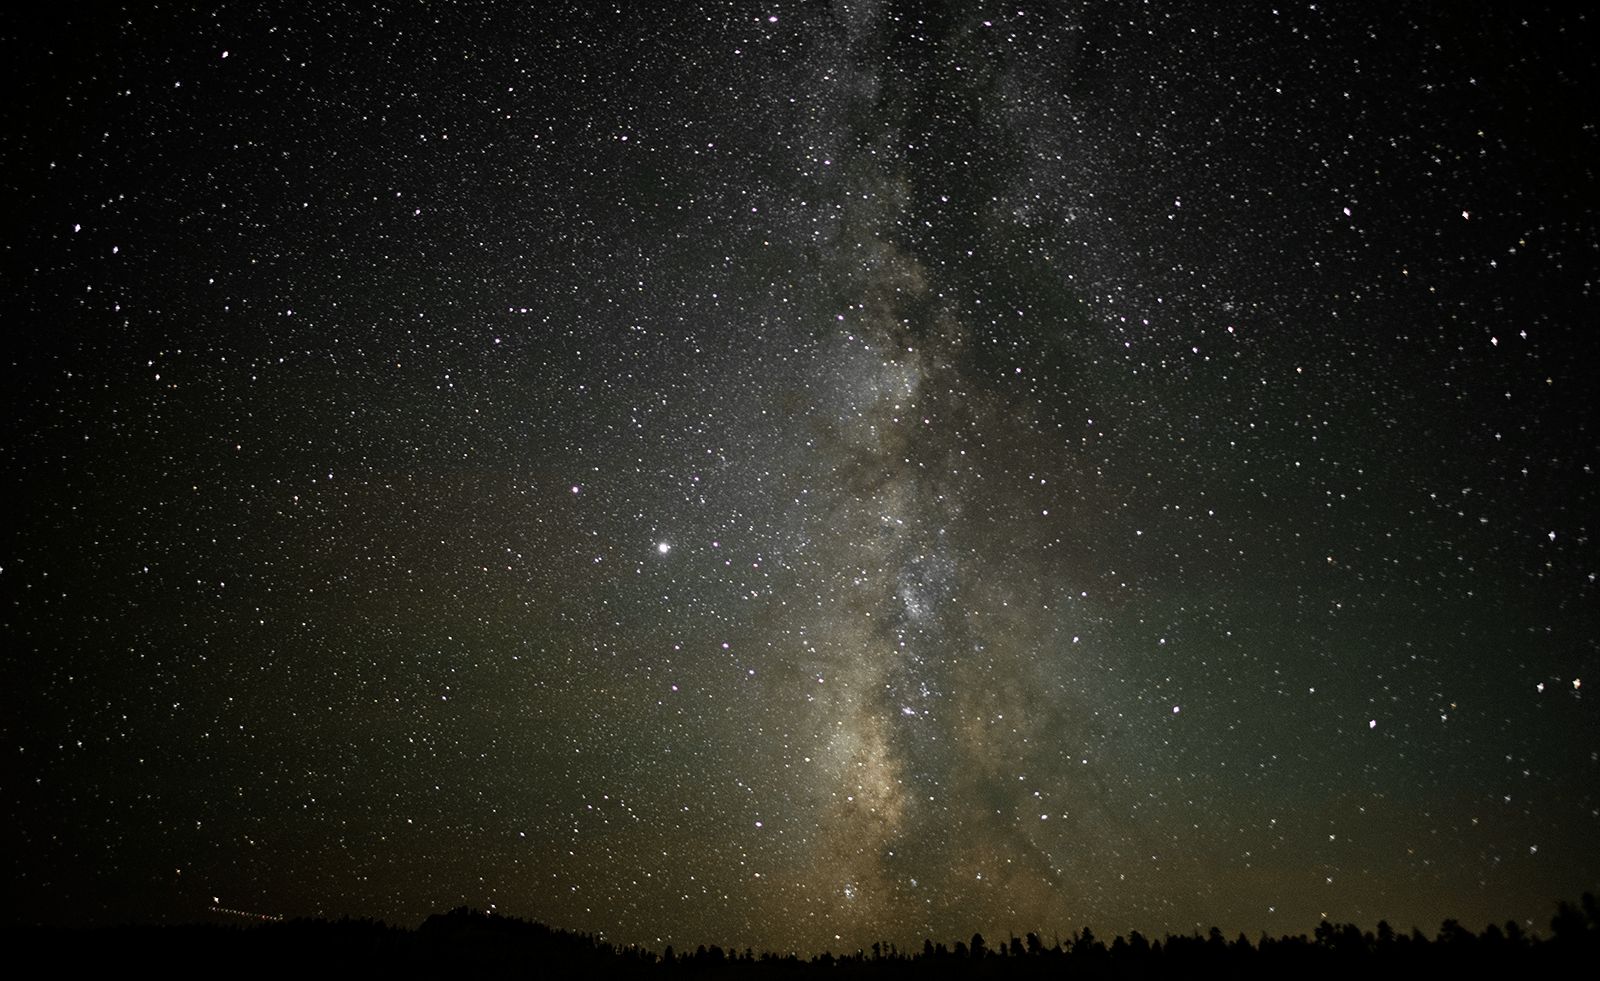 Milky Way as seen from Bryce Canyon